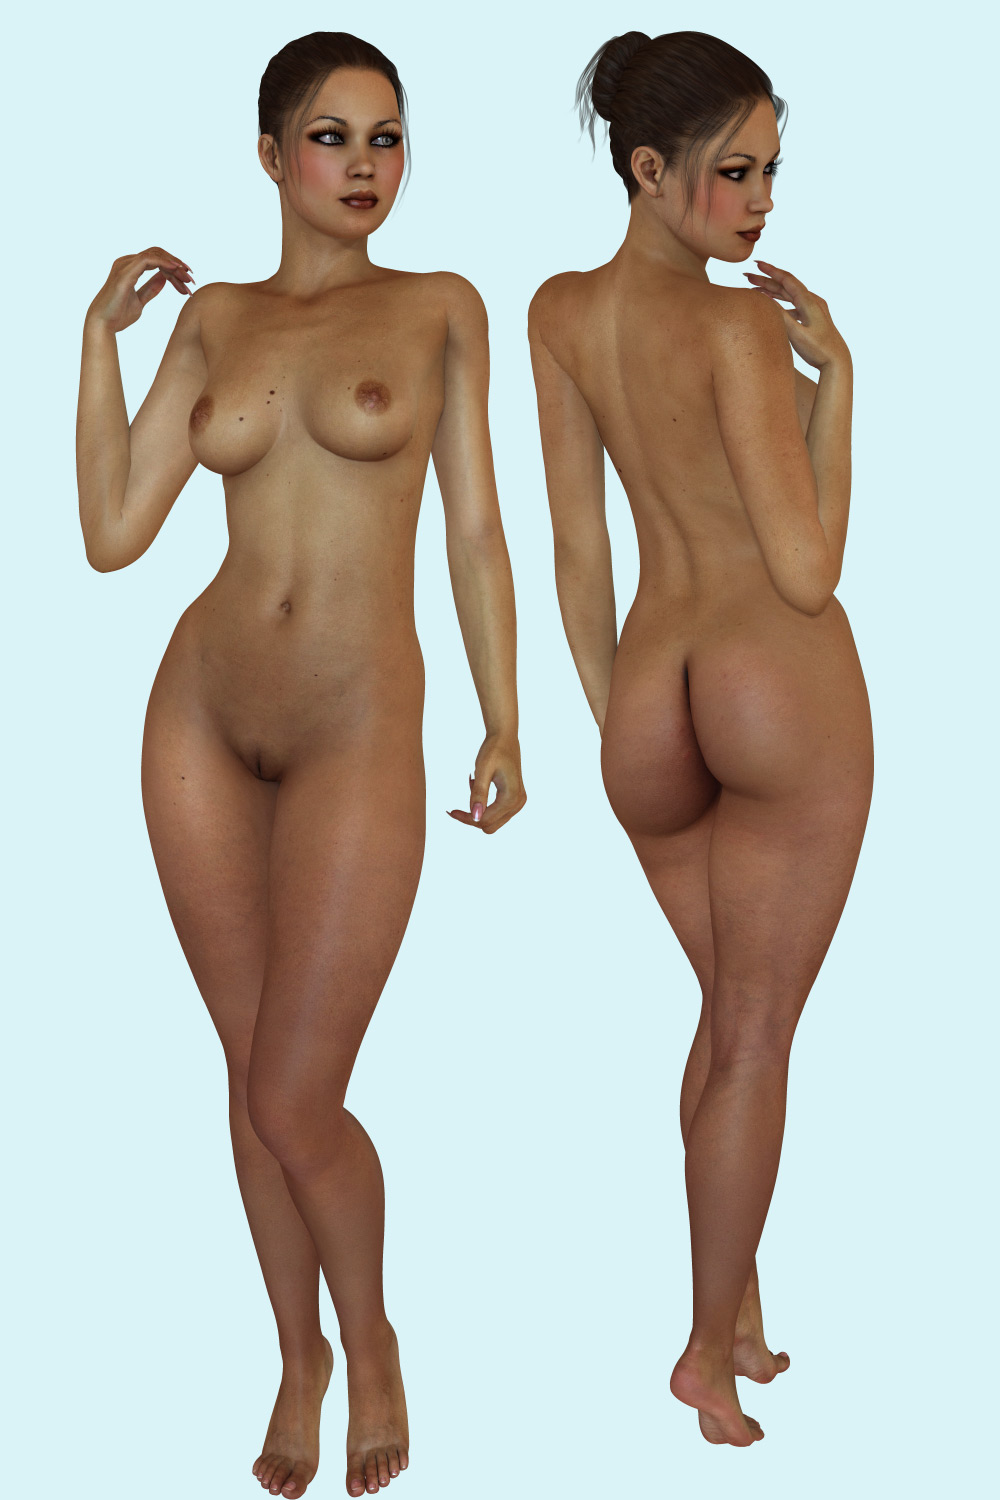 Daz3d nudes nudes video